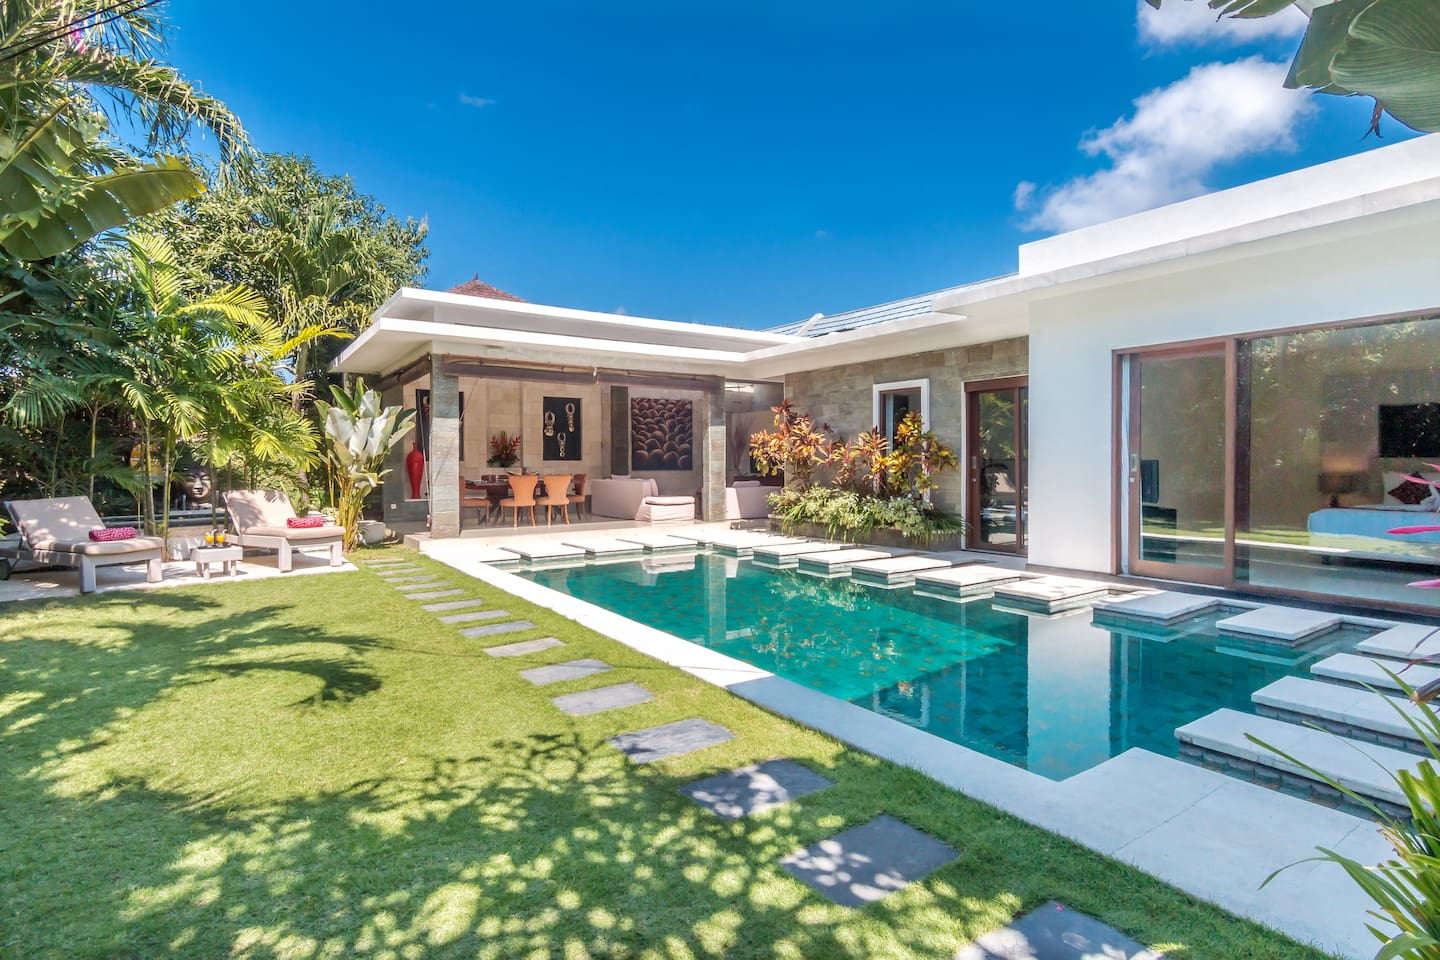 The beautiful 3 bedroom Villa with private swimming pool